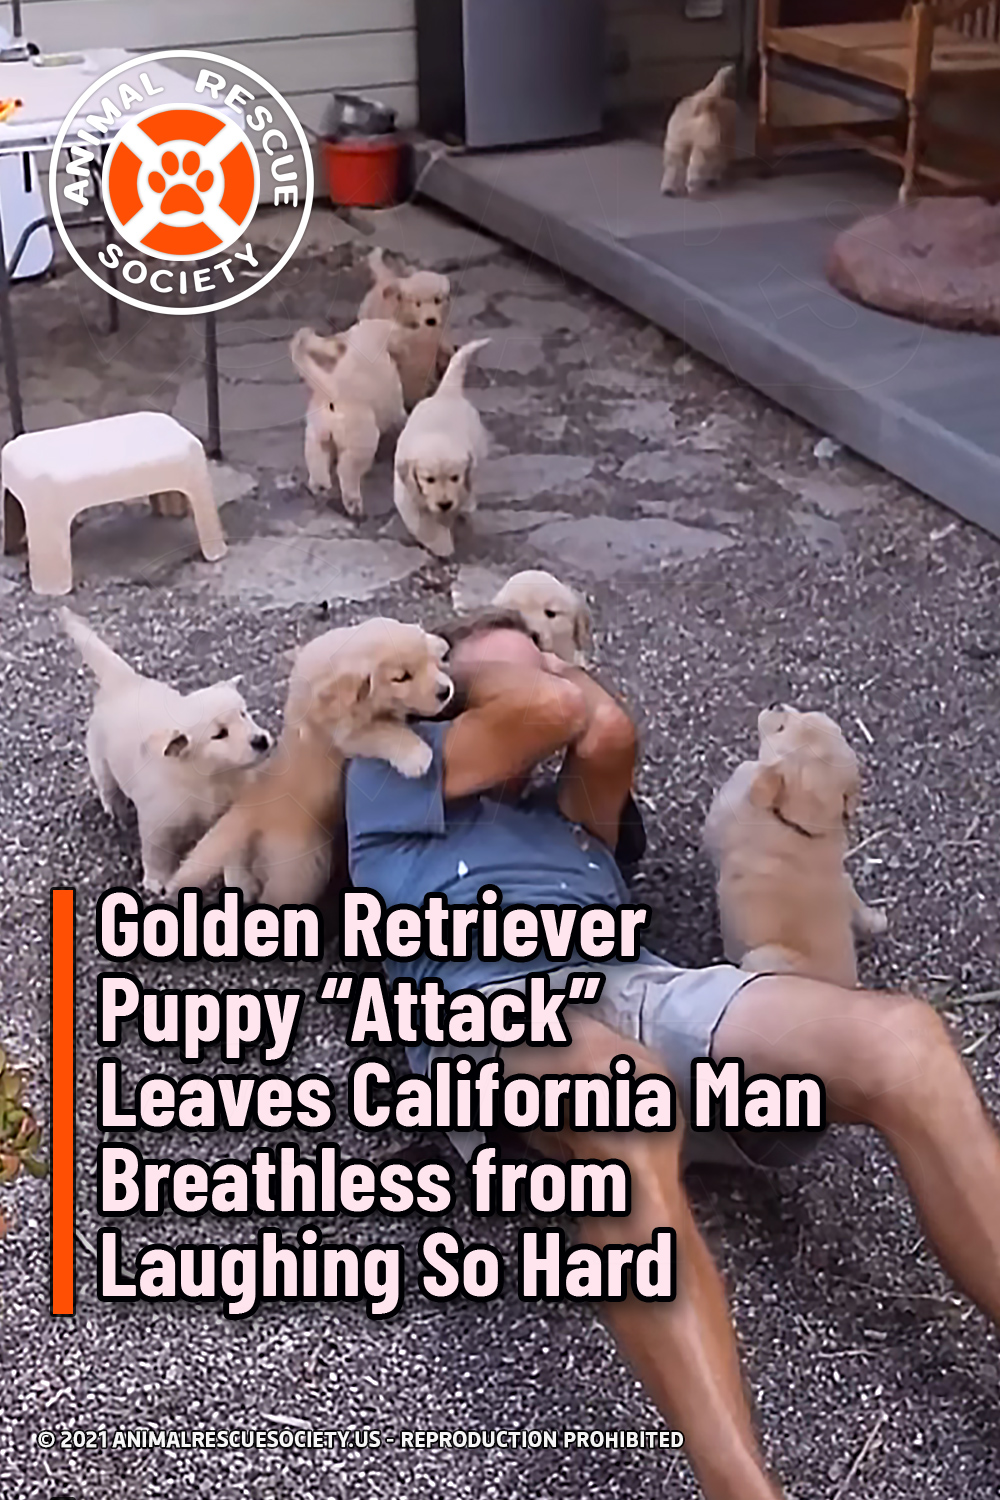 "Golden Retriever Puppy ""Attack"" Leaves California Man Breathless from Laughing So Hard"